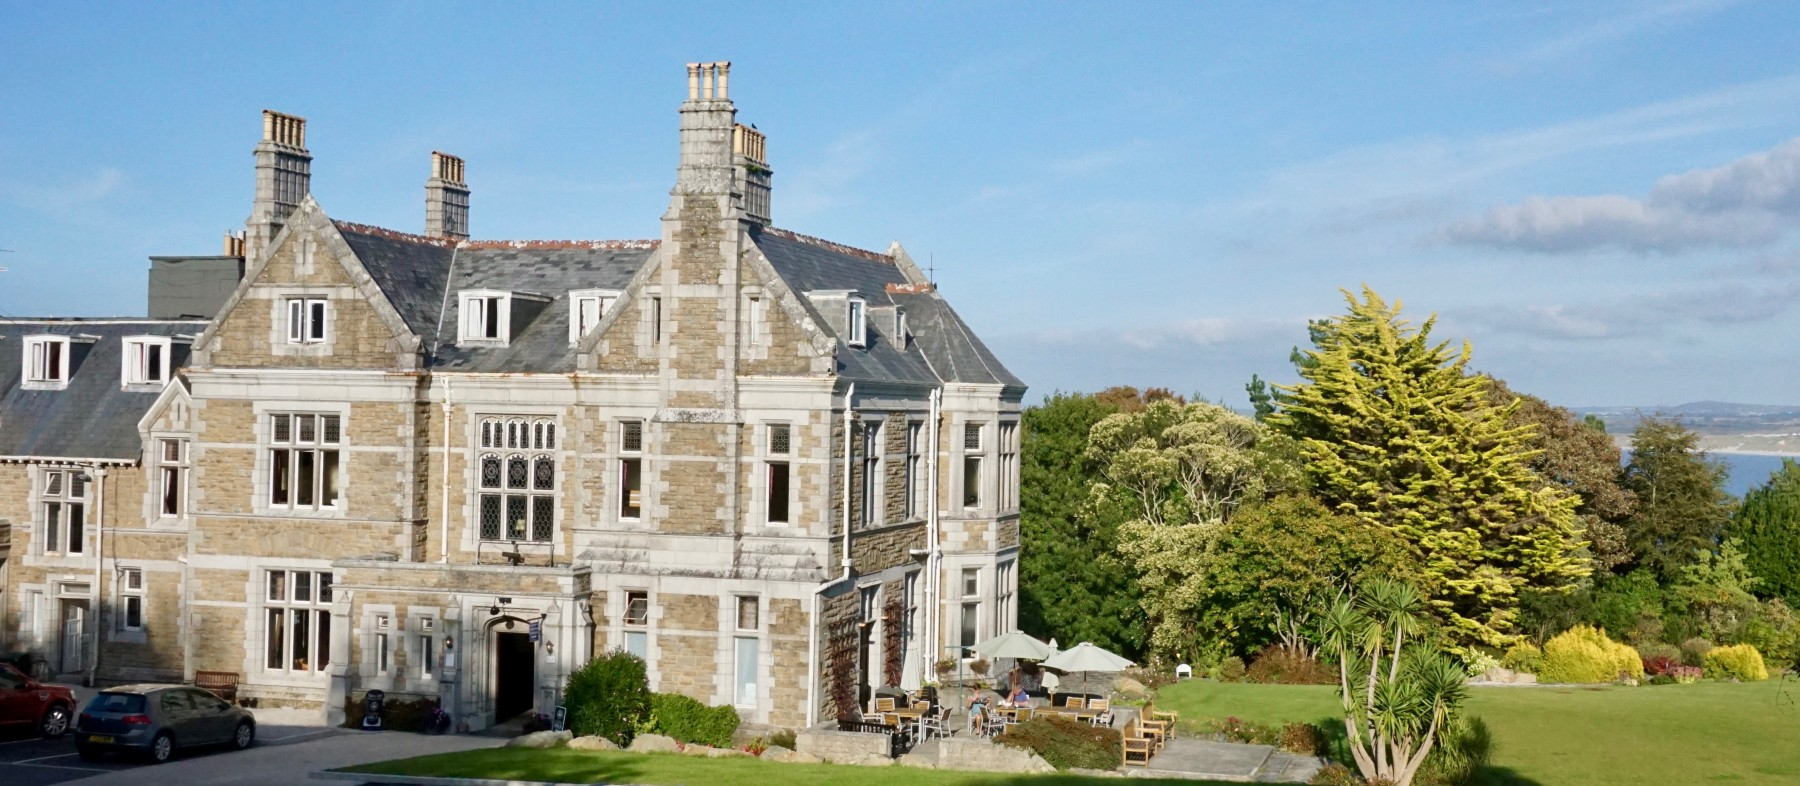 Treloyhan Manor, St. Ives